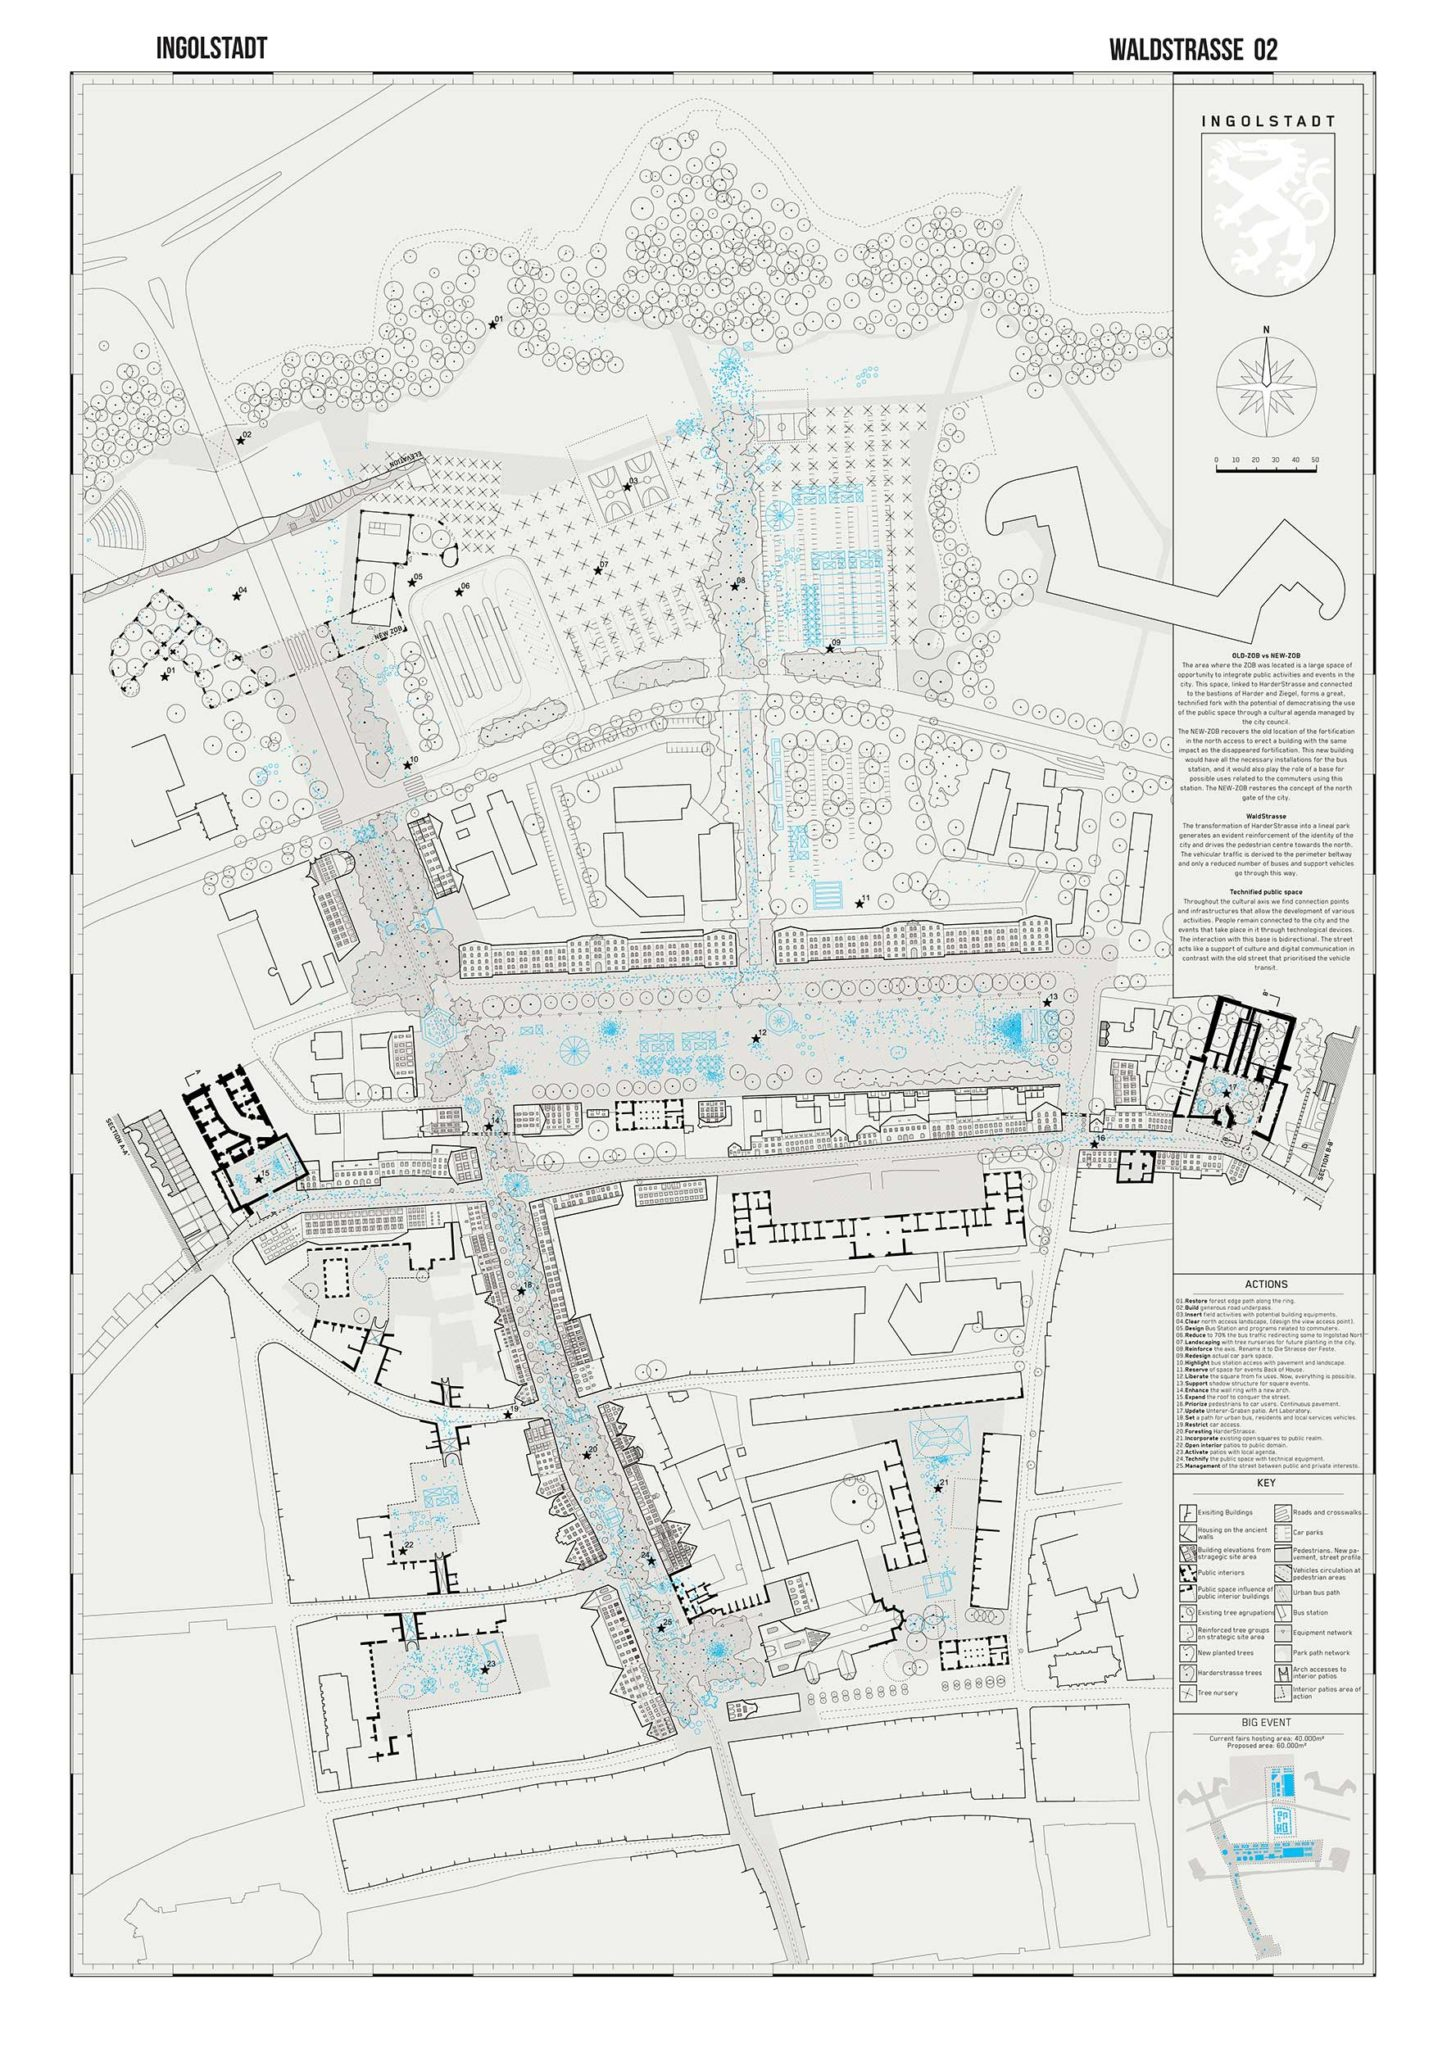 General plan of the urban intervention. The forest enters the city